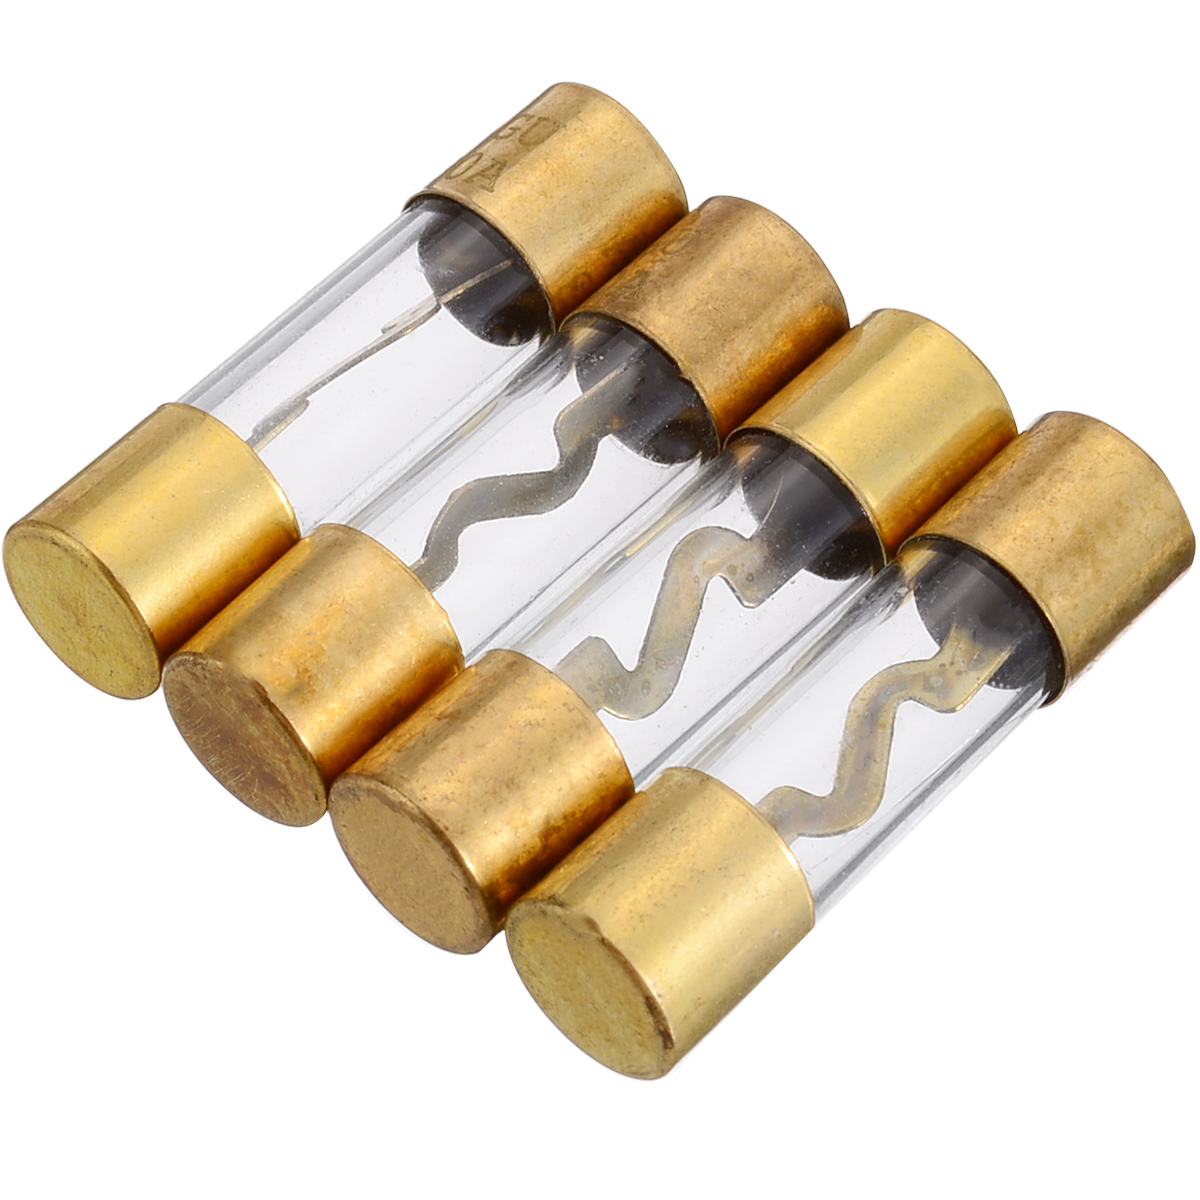 New Arrival 1pcs 30A Car Audio AGU Fuse Holder with 4 Fuses For Refit Stereo Circuit